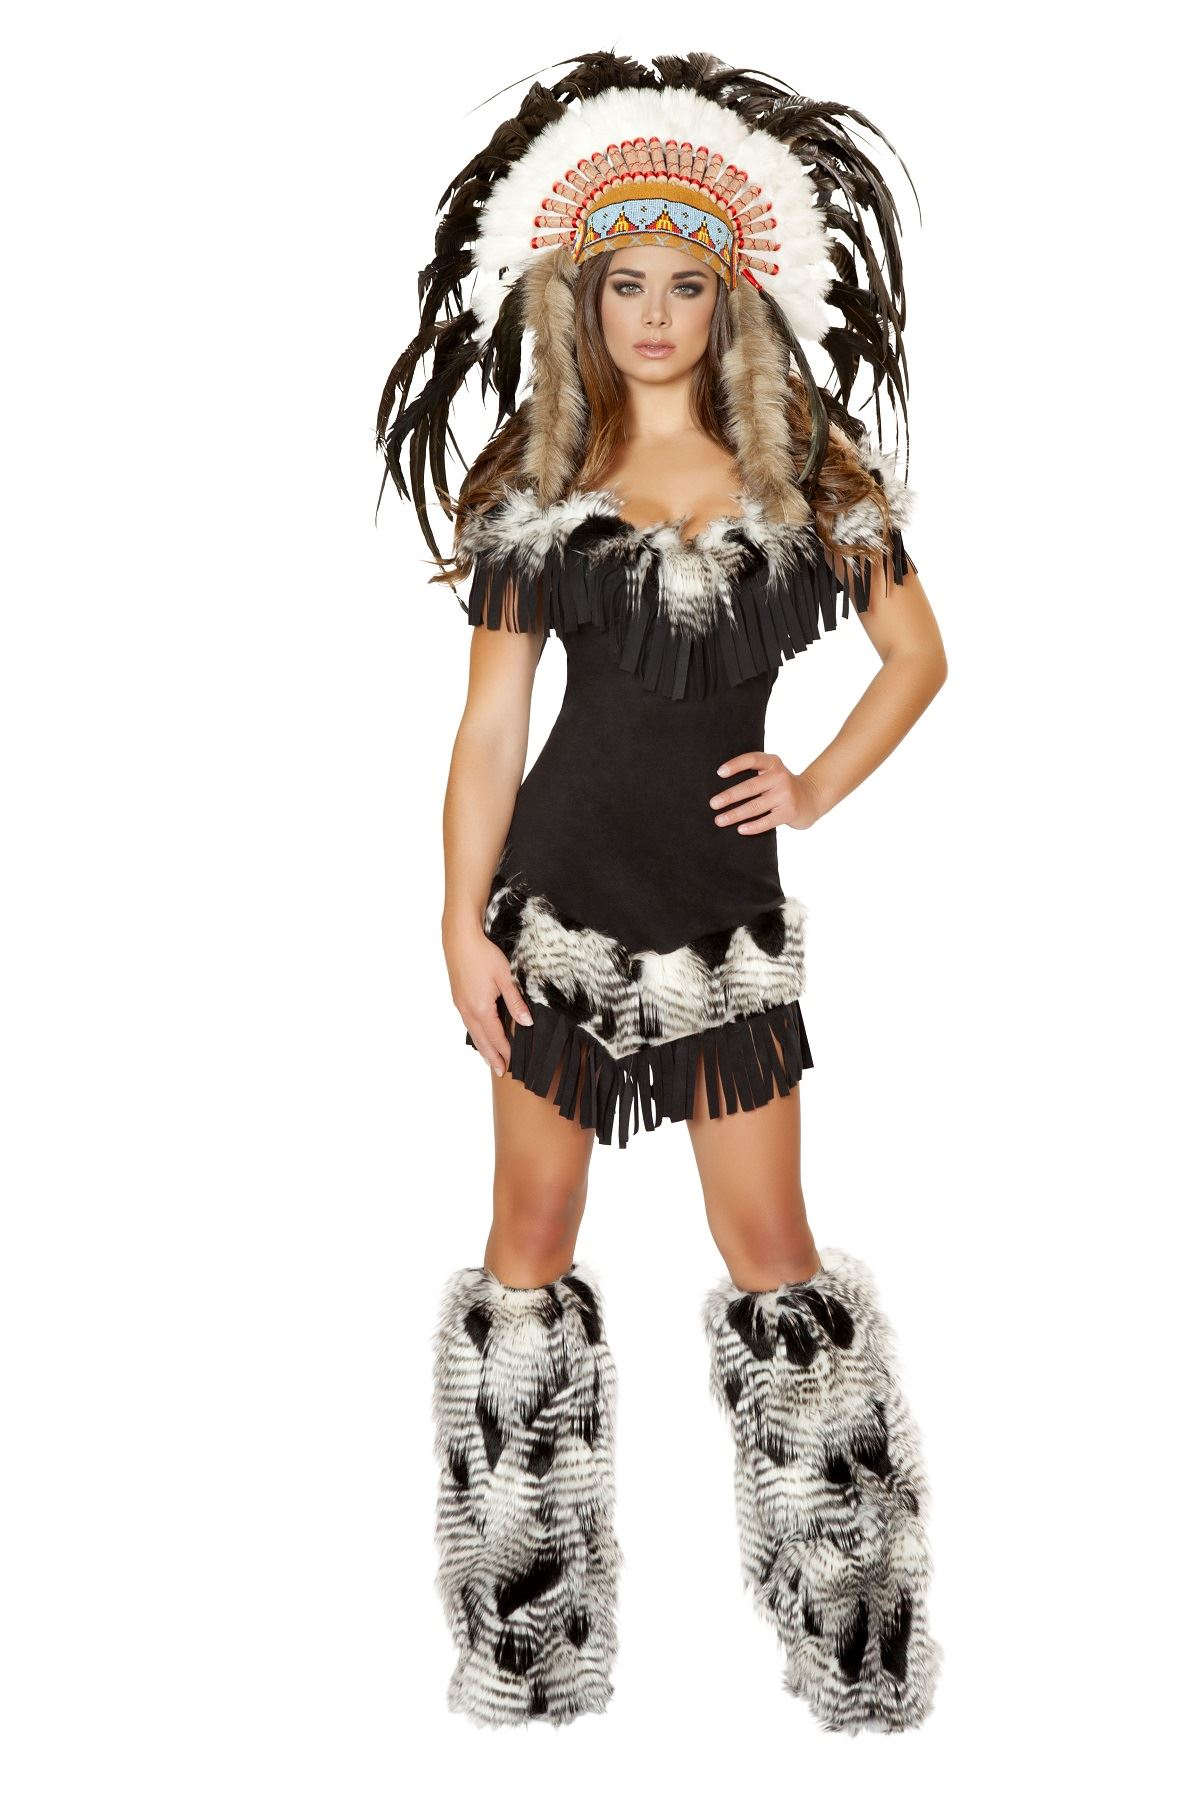 Adult Native American Cherokee Princess Costume ...  sc 1 st  The Costume Land & Adult Native American Cherokee Princess Costume | $84.99 | The ...